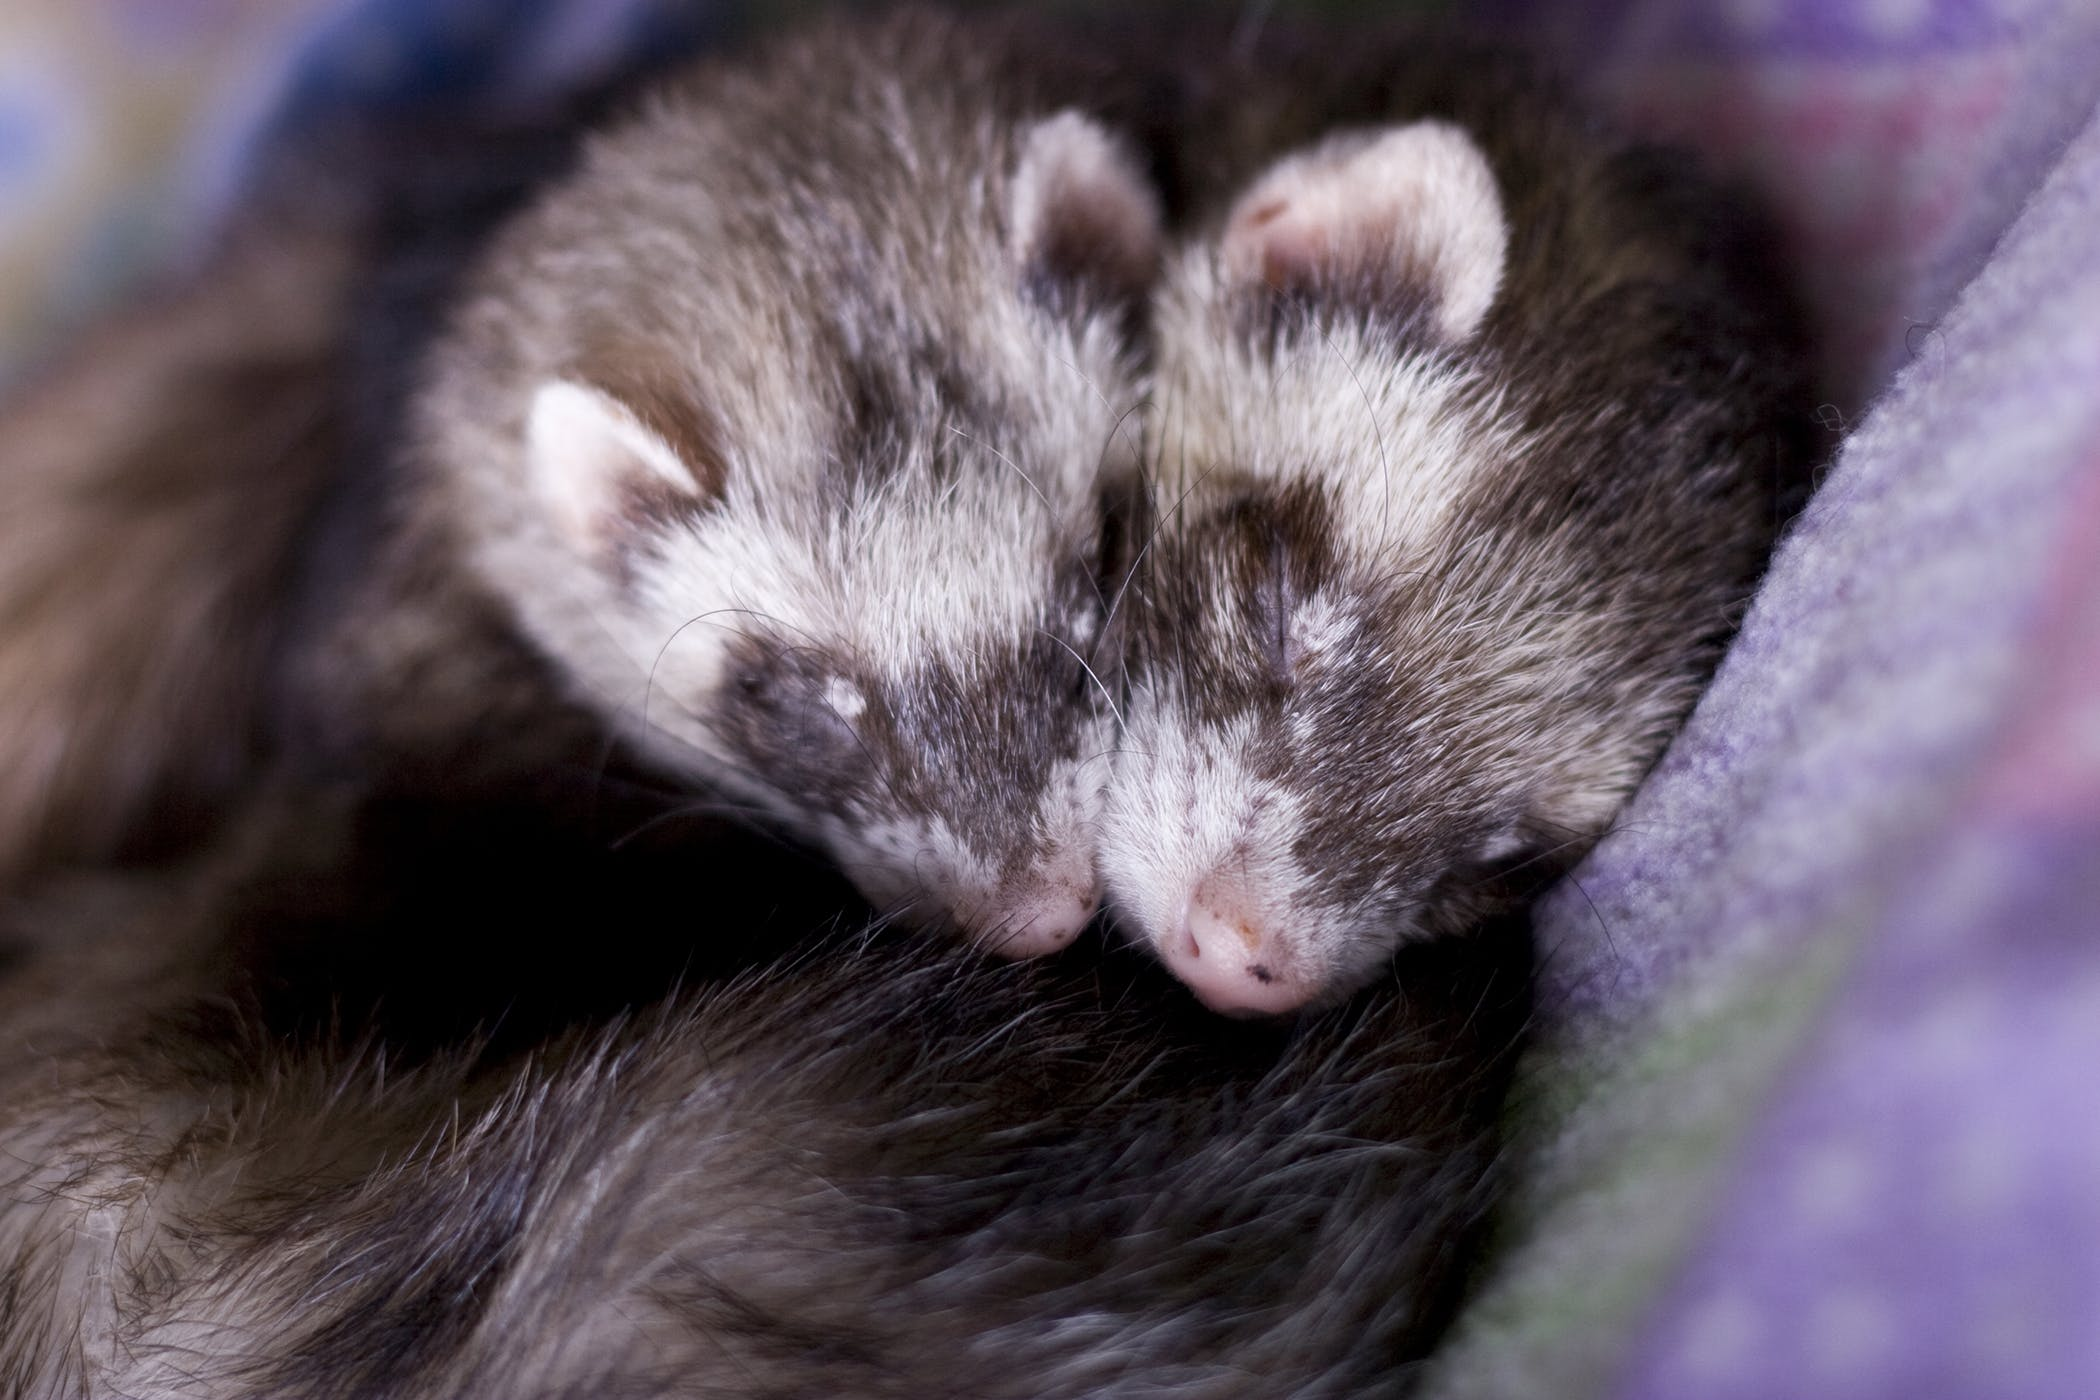 Cutaneous Mast Cell Tumors in Ferrets - Symptoms, Causes